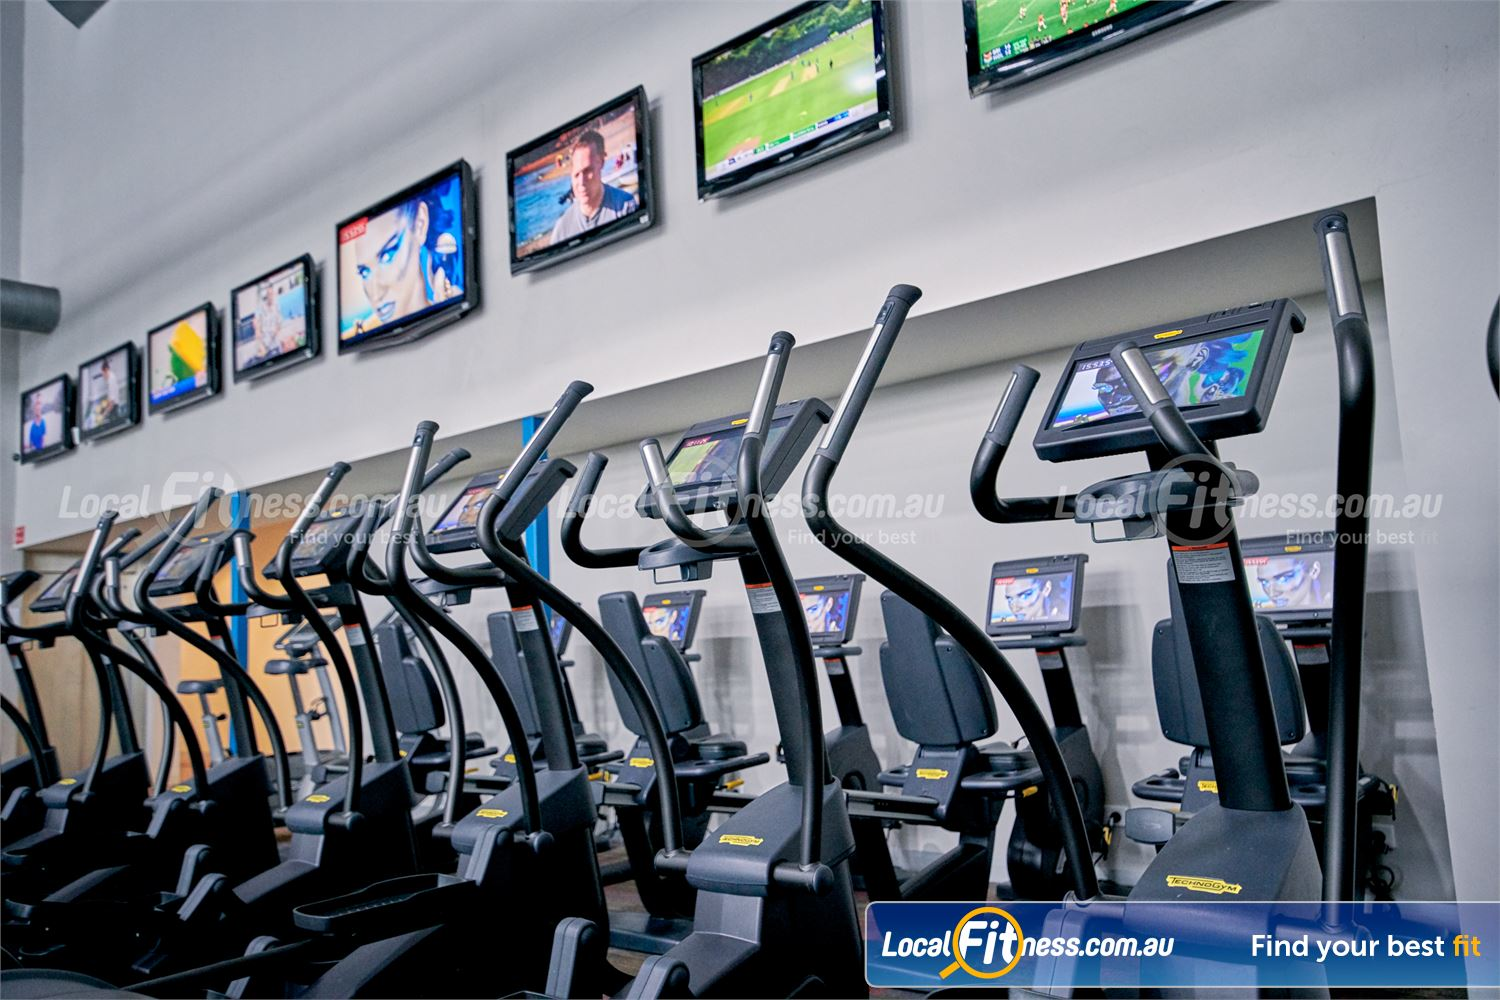 Fitness First Malvern Valley Chadstone The latest Technogym entertainment screens where you can watch your favourite shows.